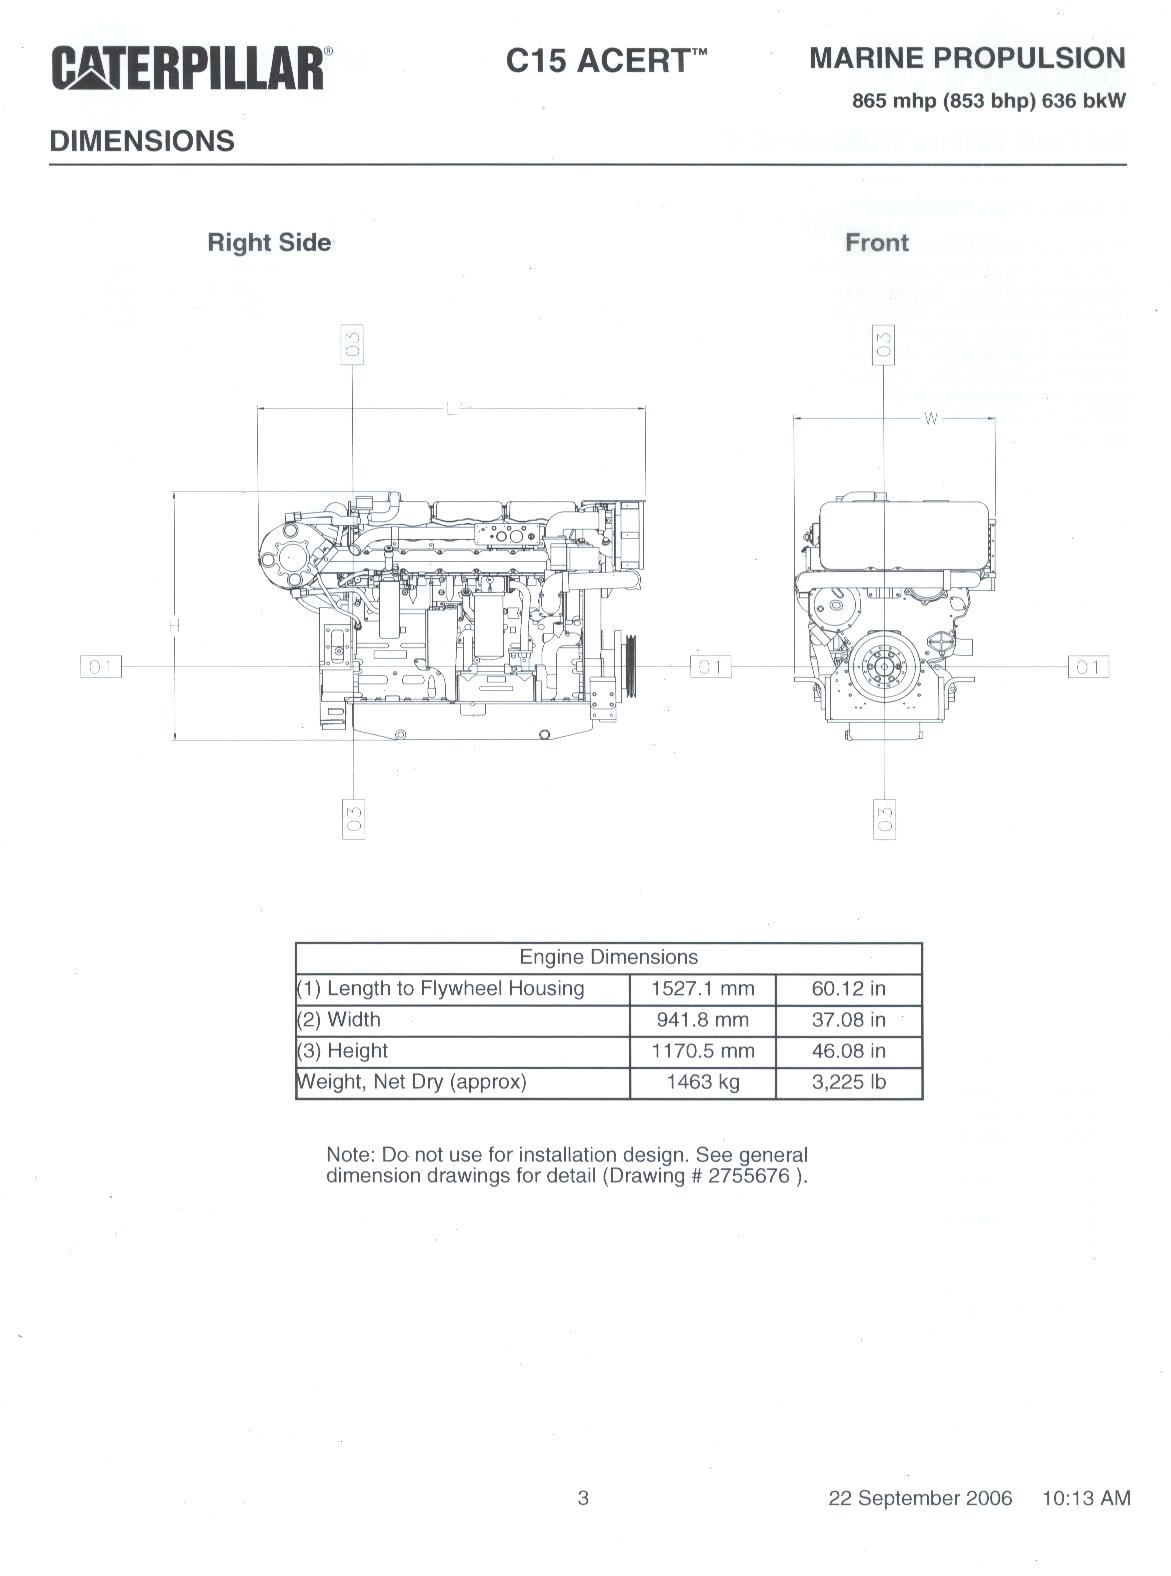 CAT C15 Brochure Specification-3.JPG